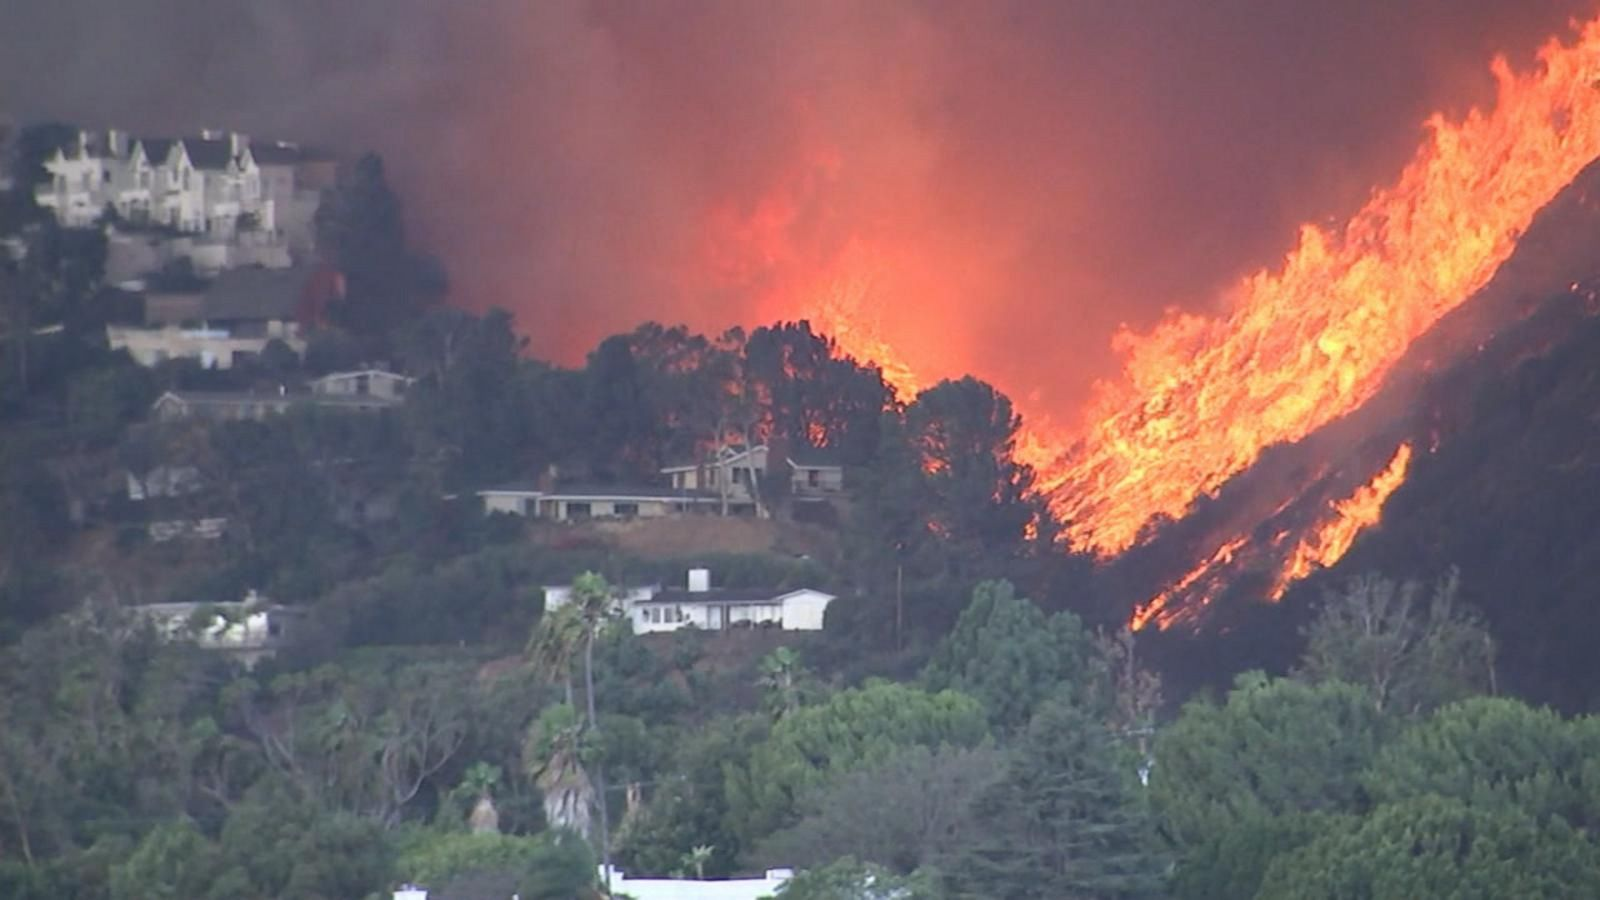 8,000-Acre California Wildfire Drives Mass Evacuation 8,000-Acre California Wildfire Drives Mass Evacuation new picture